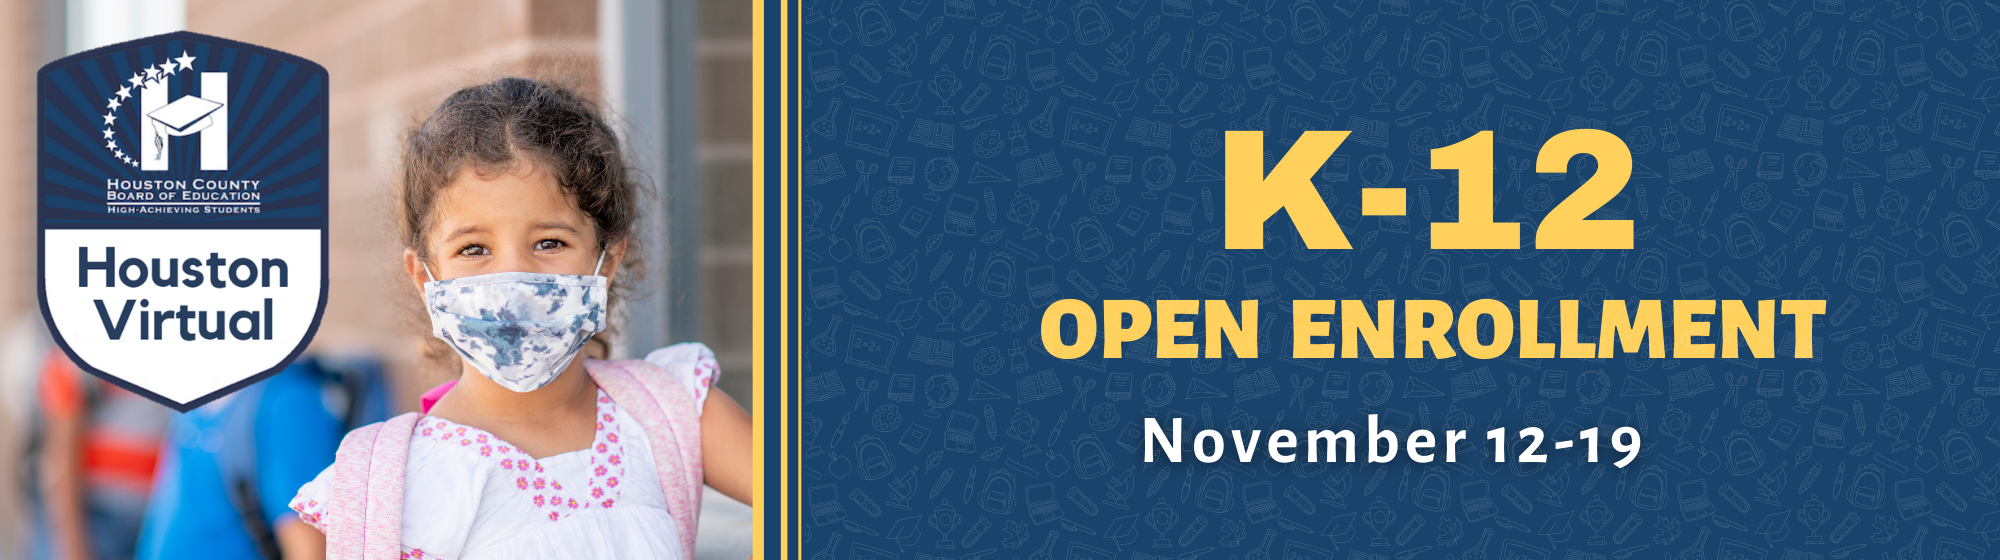 K-12 Open Enrollment